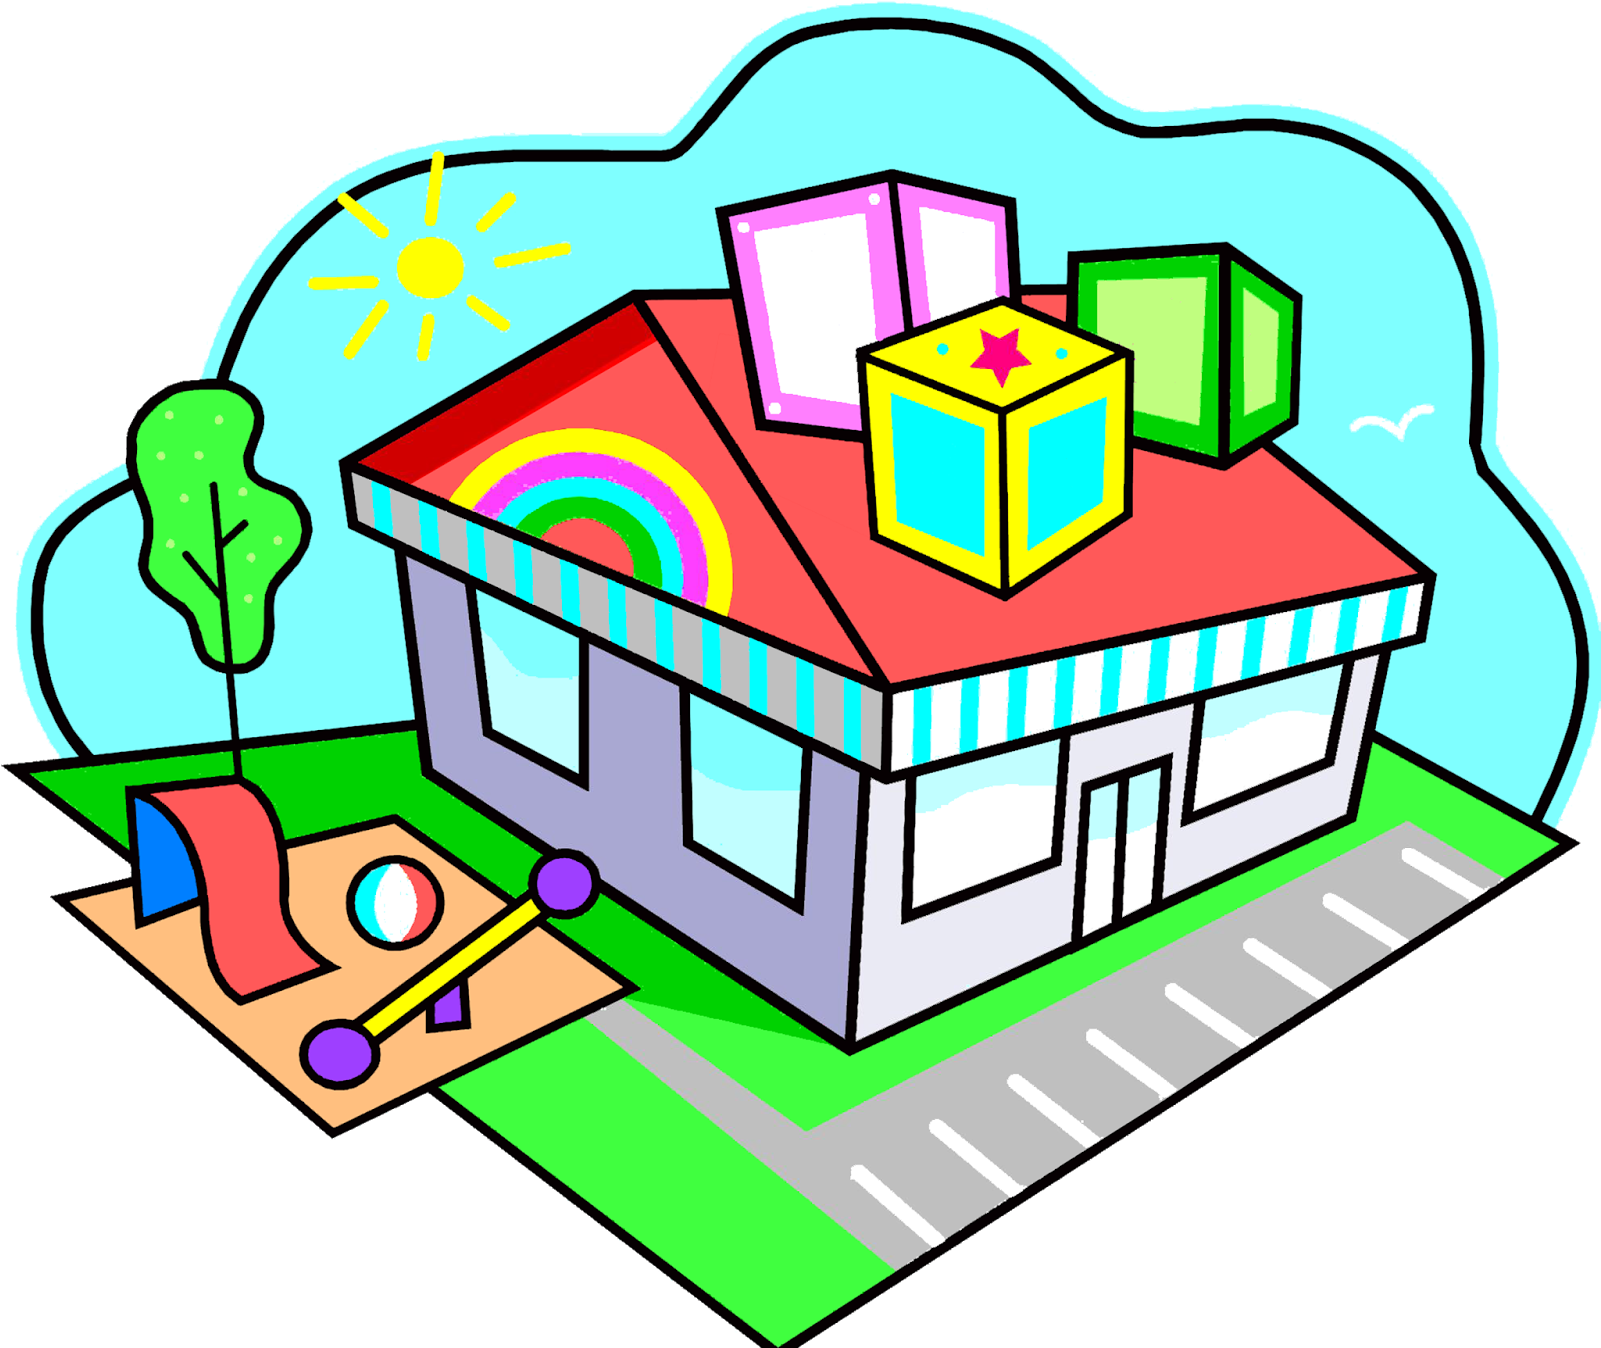 Daycare clipart preschool. Download hd house clip